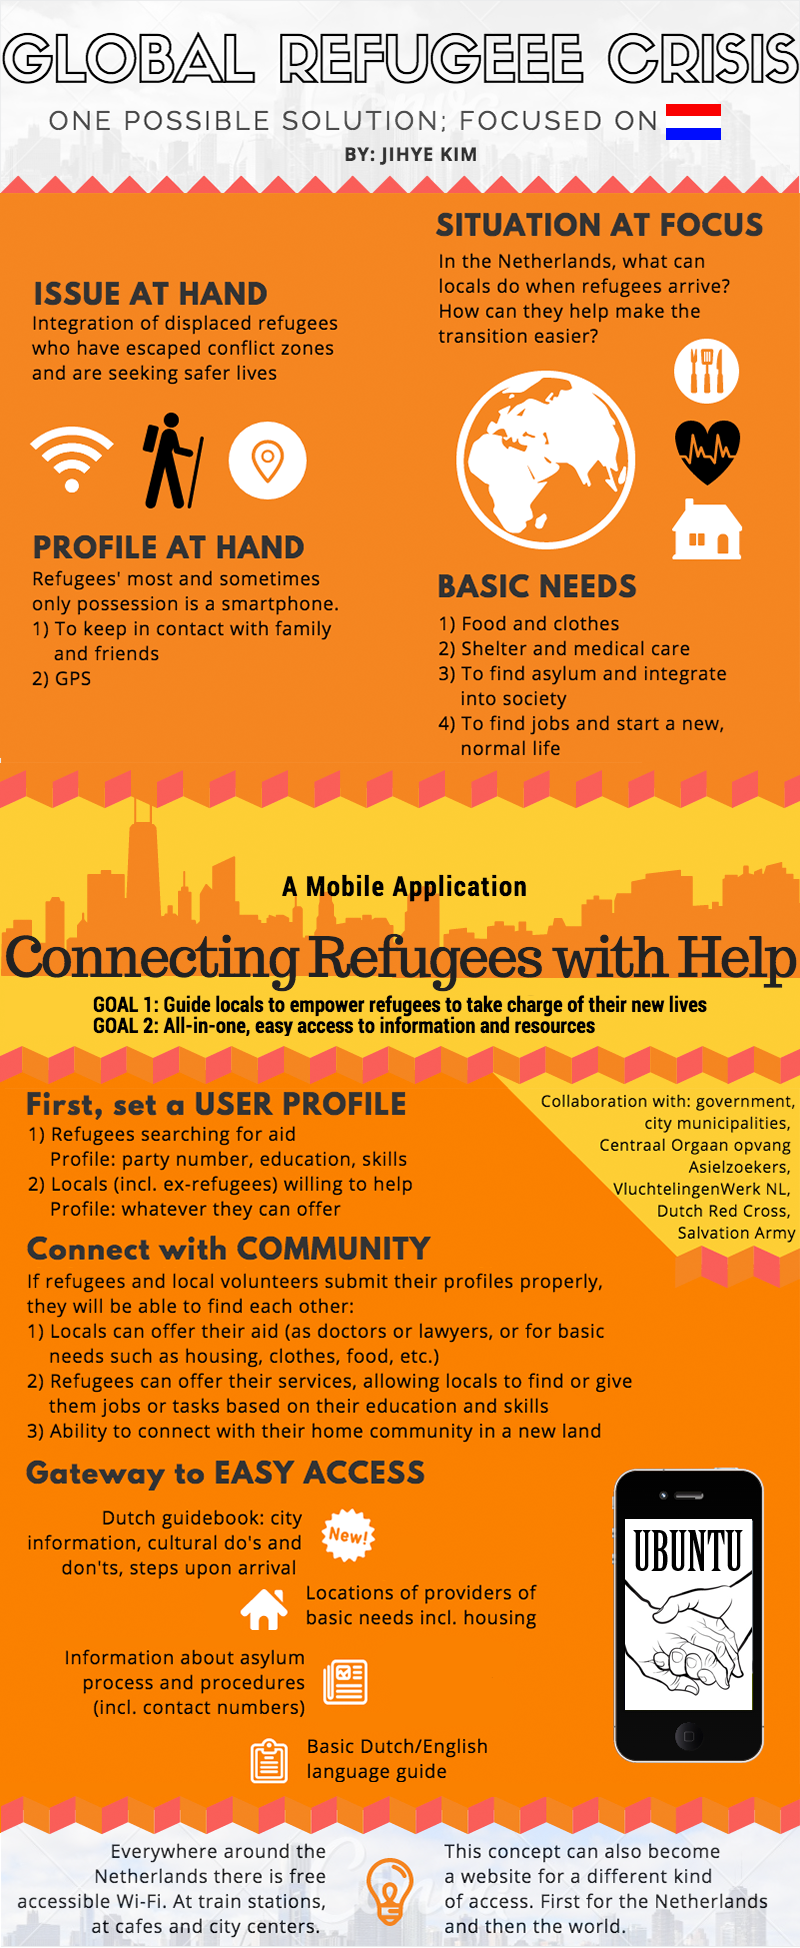 *My first ever infographic! Thank you Canva!